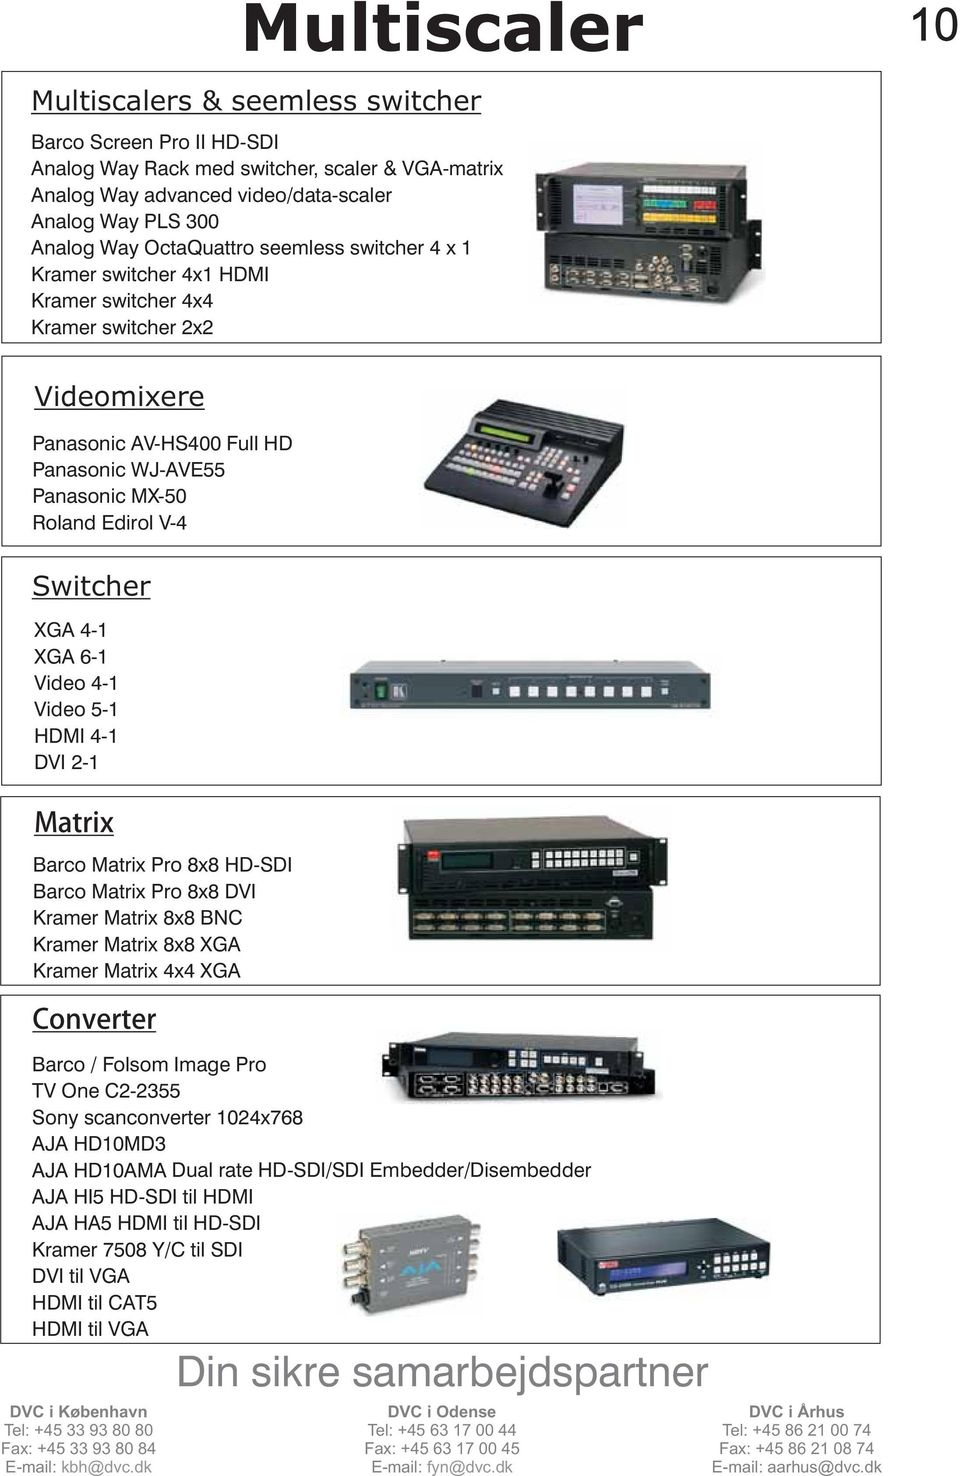 Switcher XGA 4-1 XGA 6-1 Video 4-1 Video 5-1 HDMI 4-1 DVI 2-1 Matrix Barco Matrix Pro 8x8 HD-SDI Barco Matrix Pro 8x8 DVI Kramer Matrix 8x8 BNC Kramer Matrix 8x8 XGA Kramer Matrix 4x4 XGA Converter